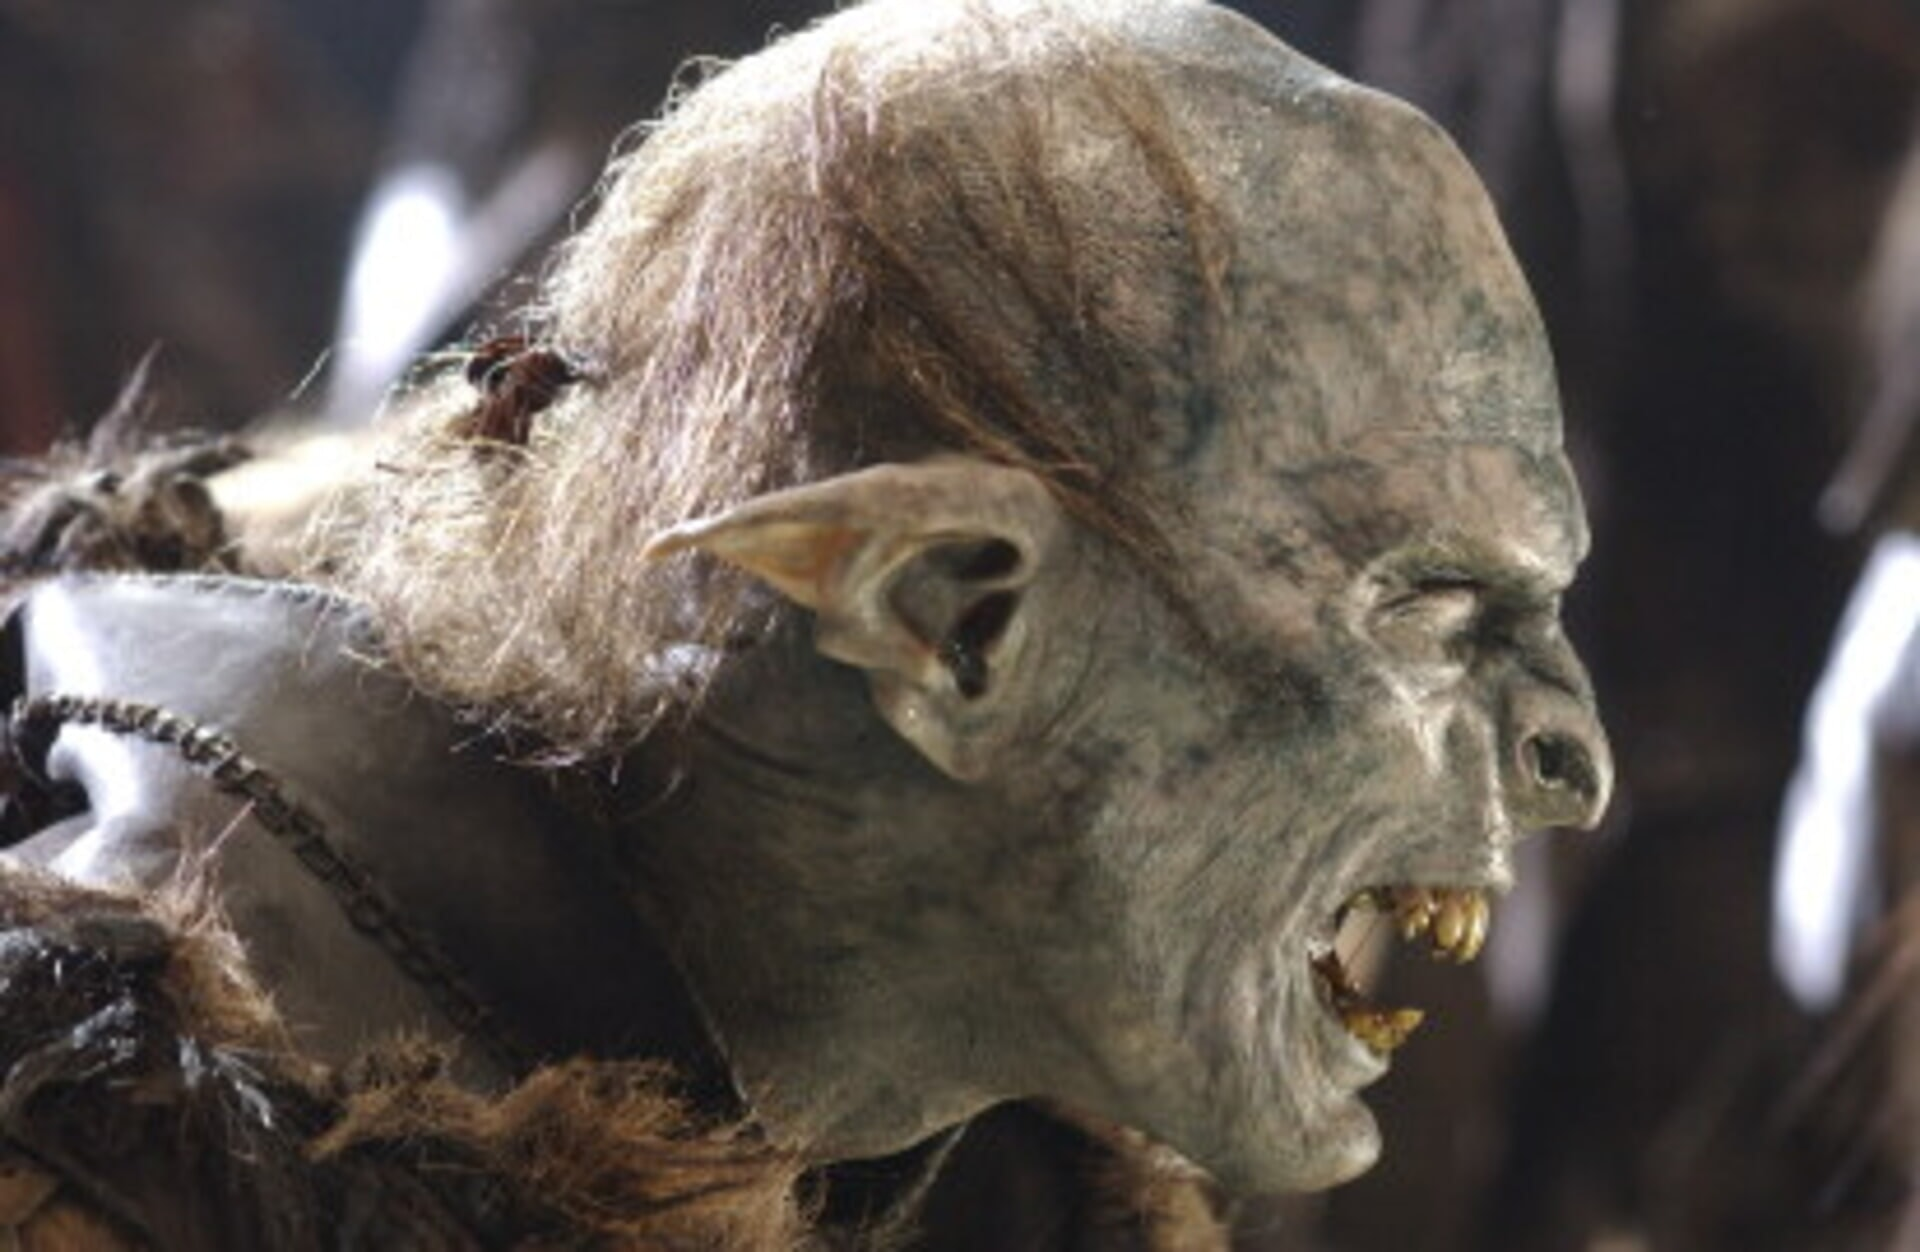 The Lord of the Rings: The Two Towers - Image 20